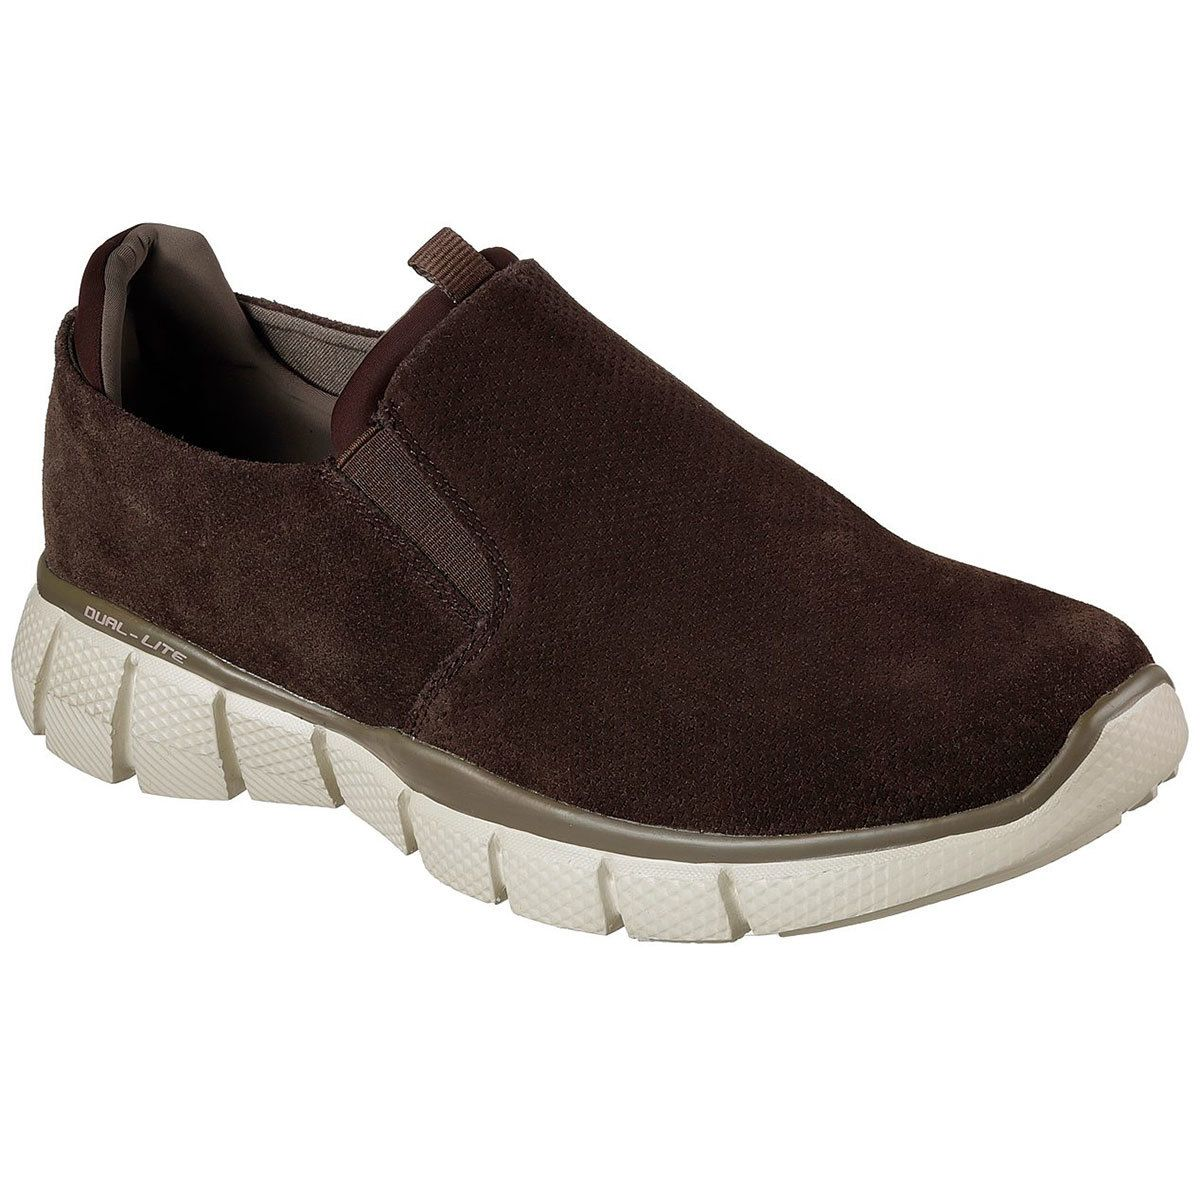 SKECHERS Men's Equalizer 2.0 Lodini Slip On Casual Shoes, Chocolate, Wide